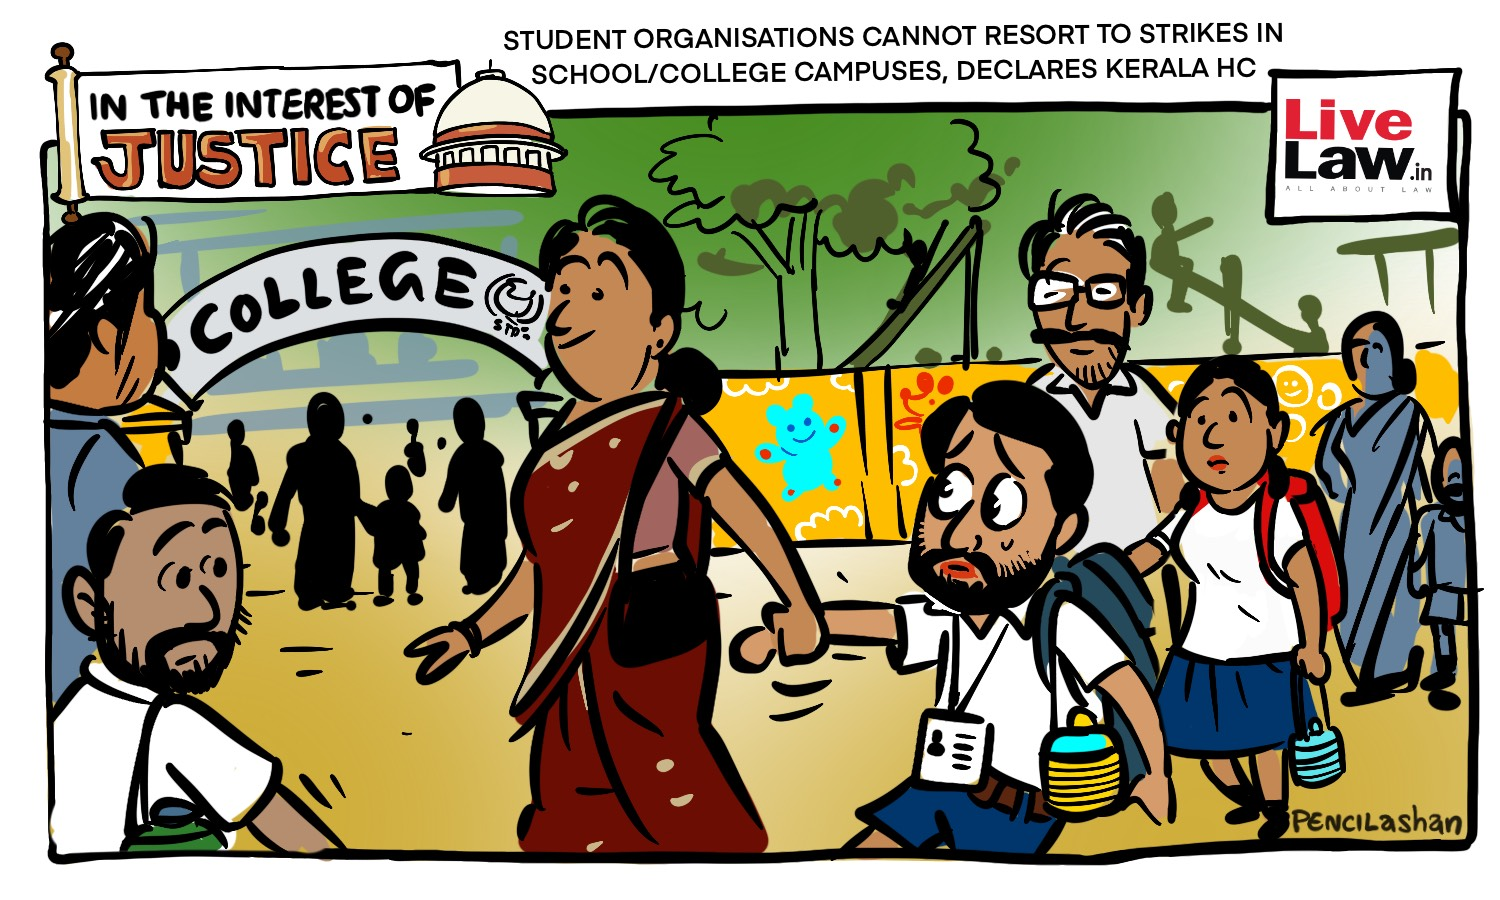 [CARTOON] Student Organisations Cannot Resort To Strikes In School/College Campuses, Declares Kerala HC